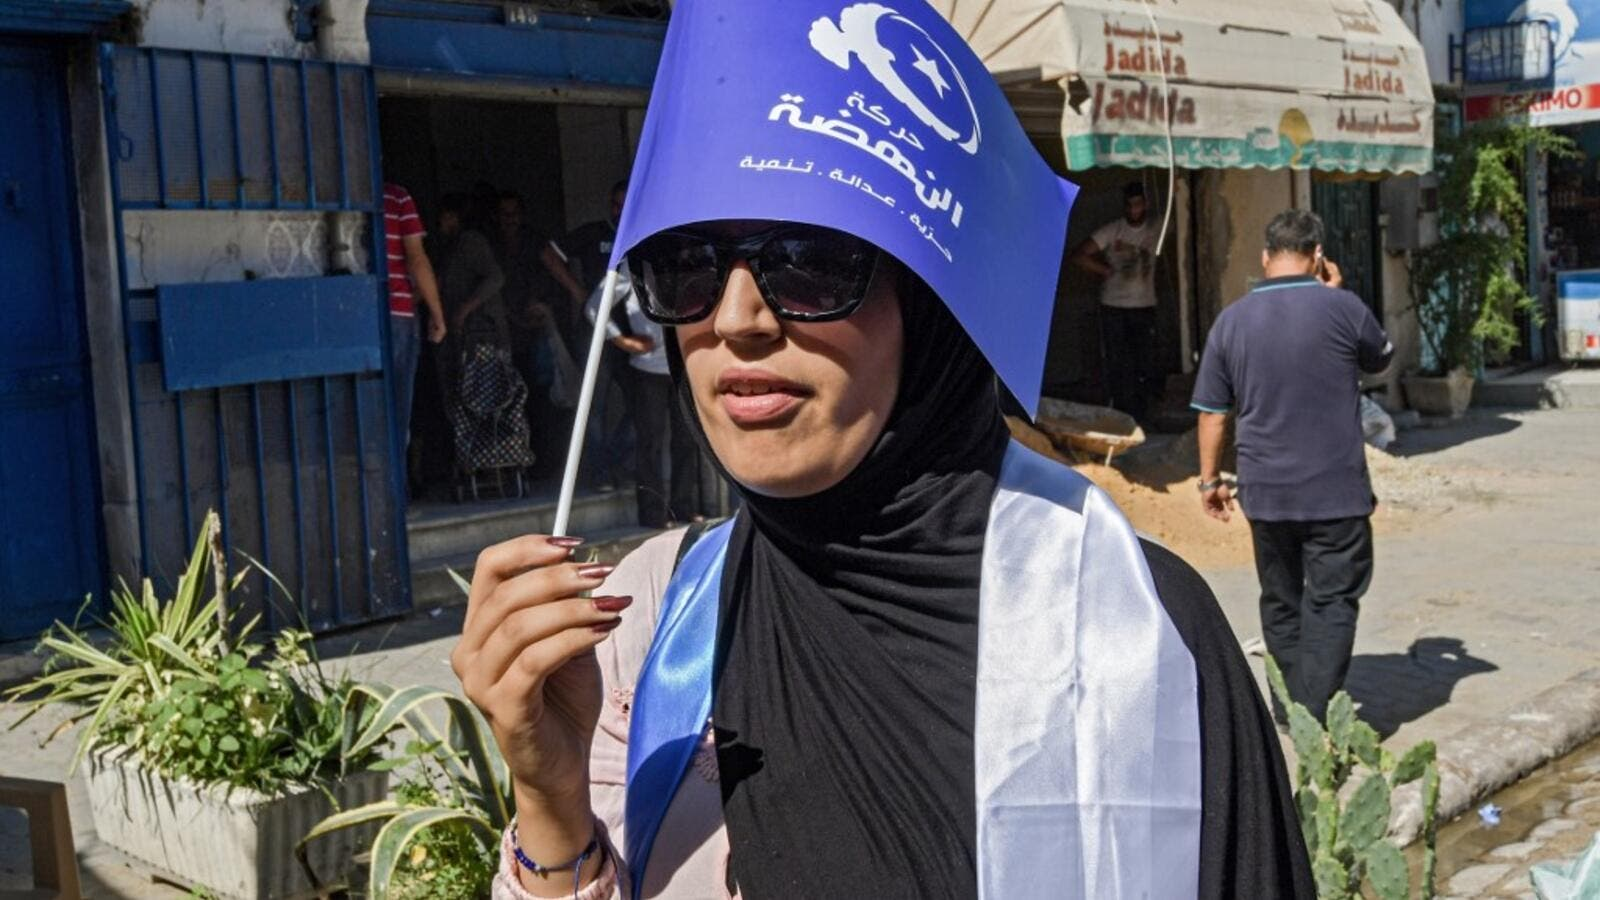 A woman walks holding up a flag of the Islamist-inspired Ennahda party while campaigning in the upcoming upcoming legislative elections in the capital Tunis on October 1, 2019. (FETHI BELAID / AFP)